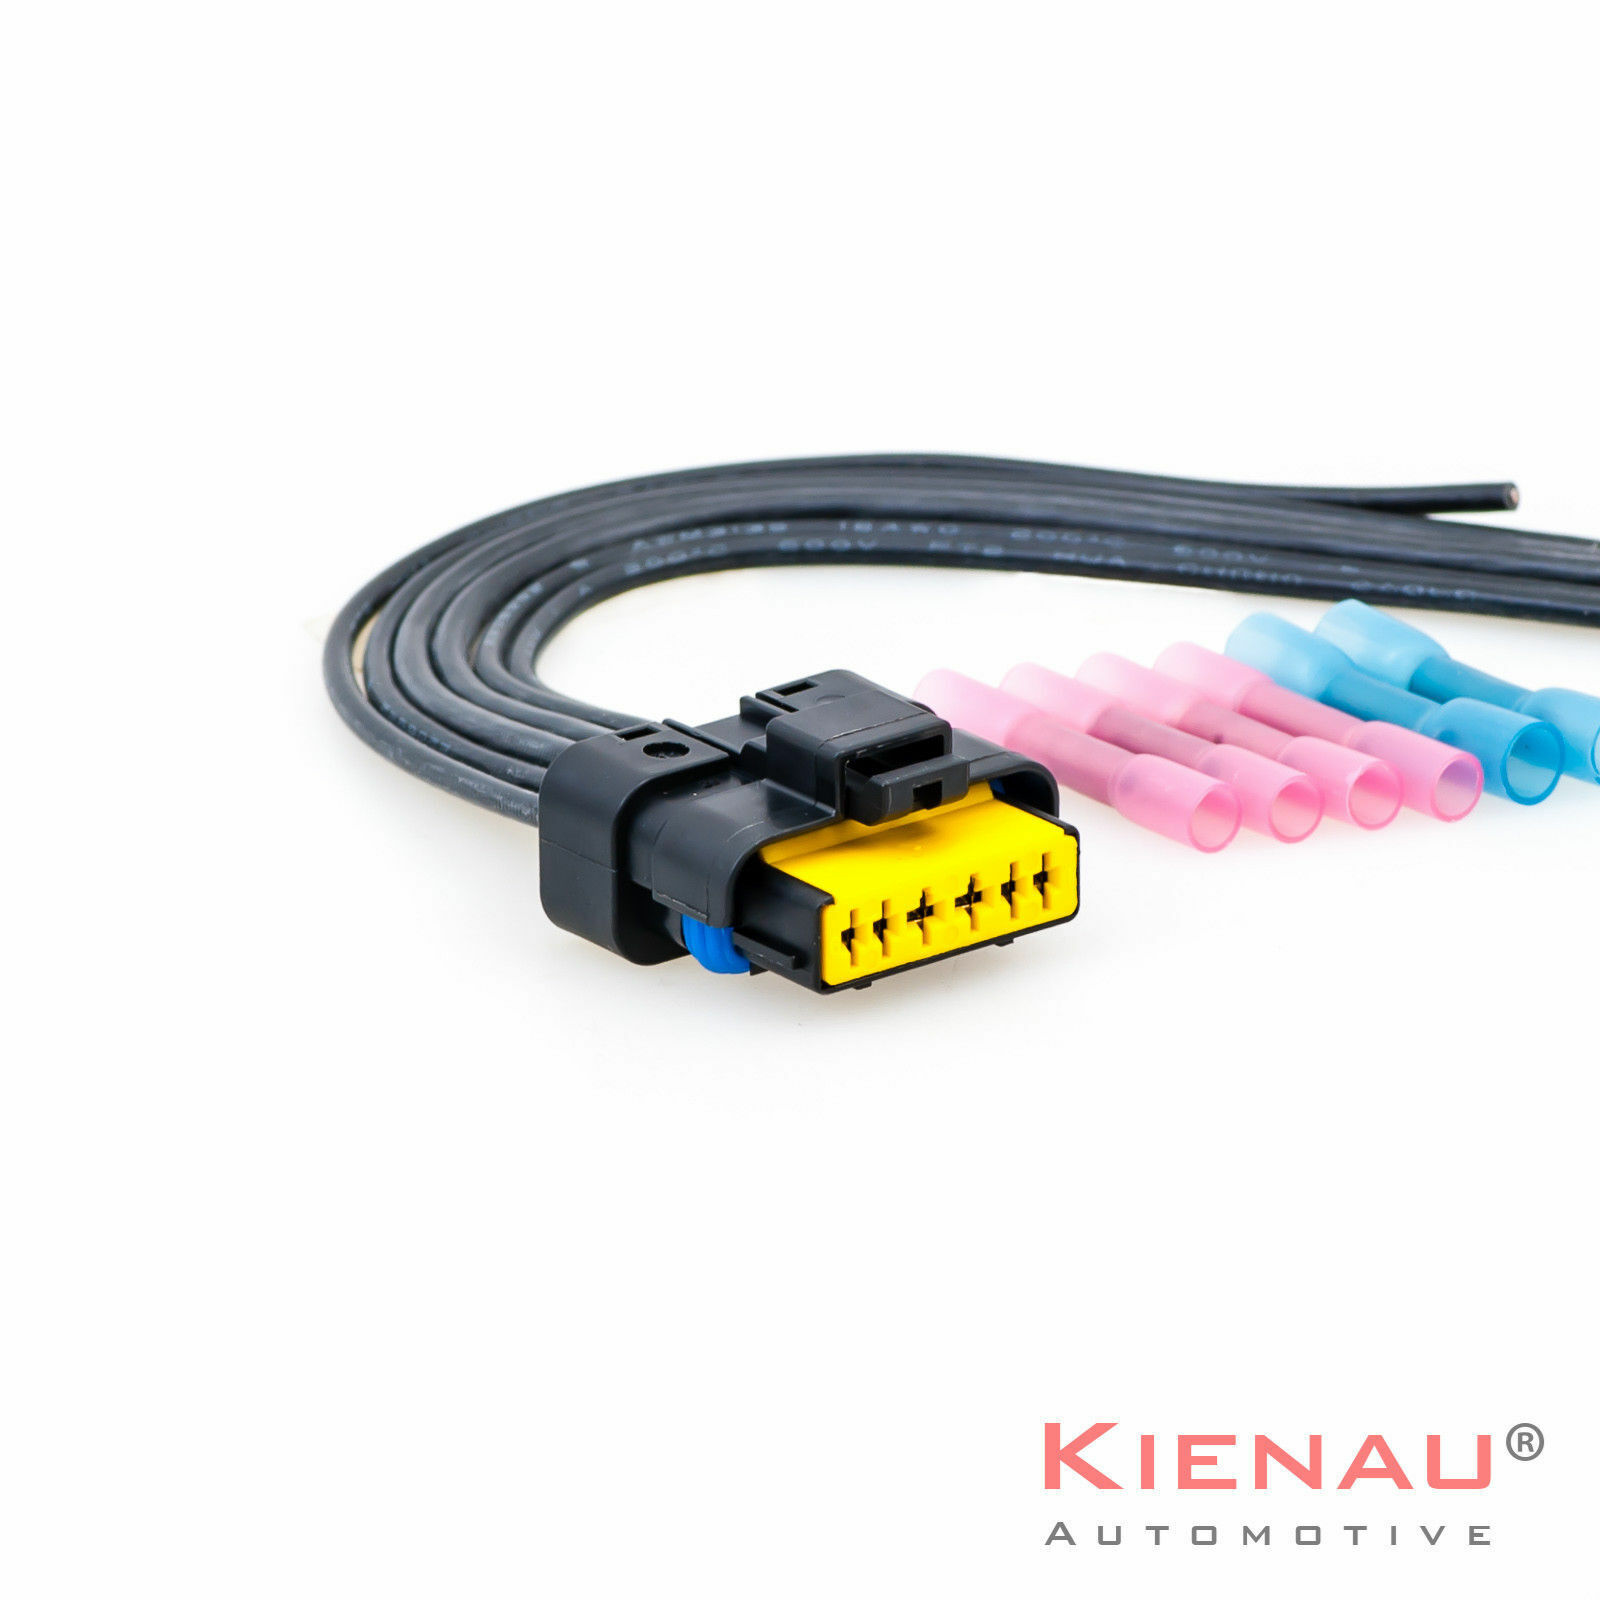 Wiring Harness Connector Plug Renault Megane Scenic Temic Window 1 Of 5free Shipping